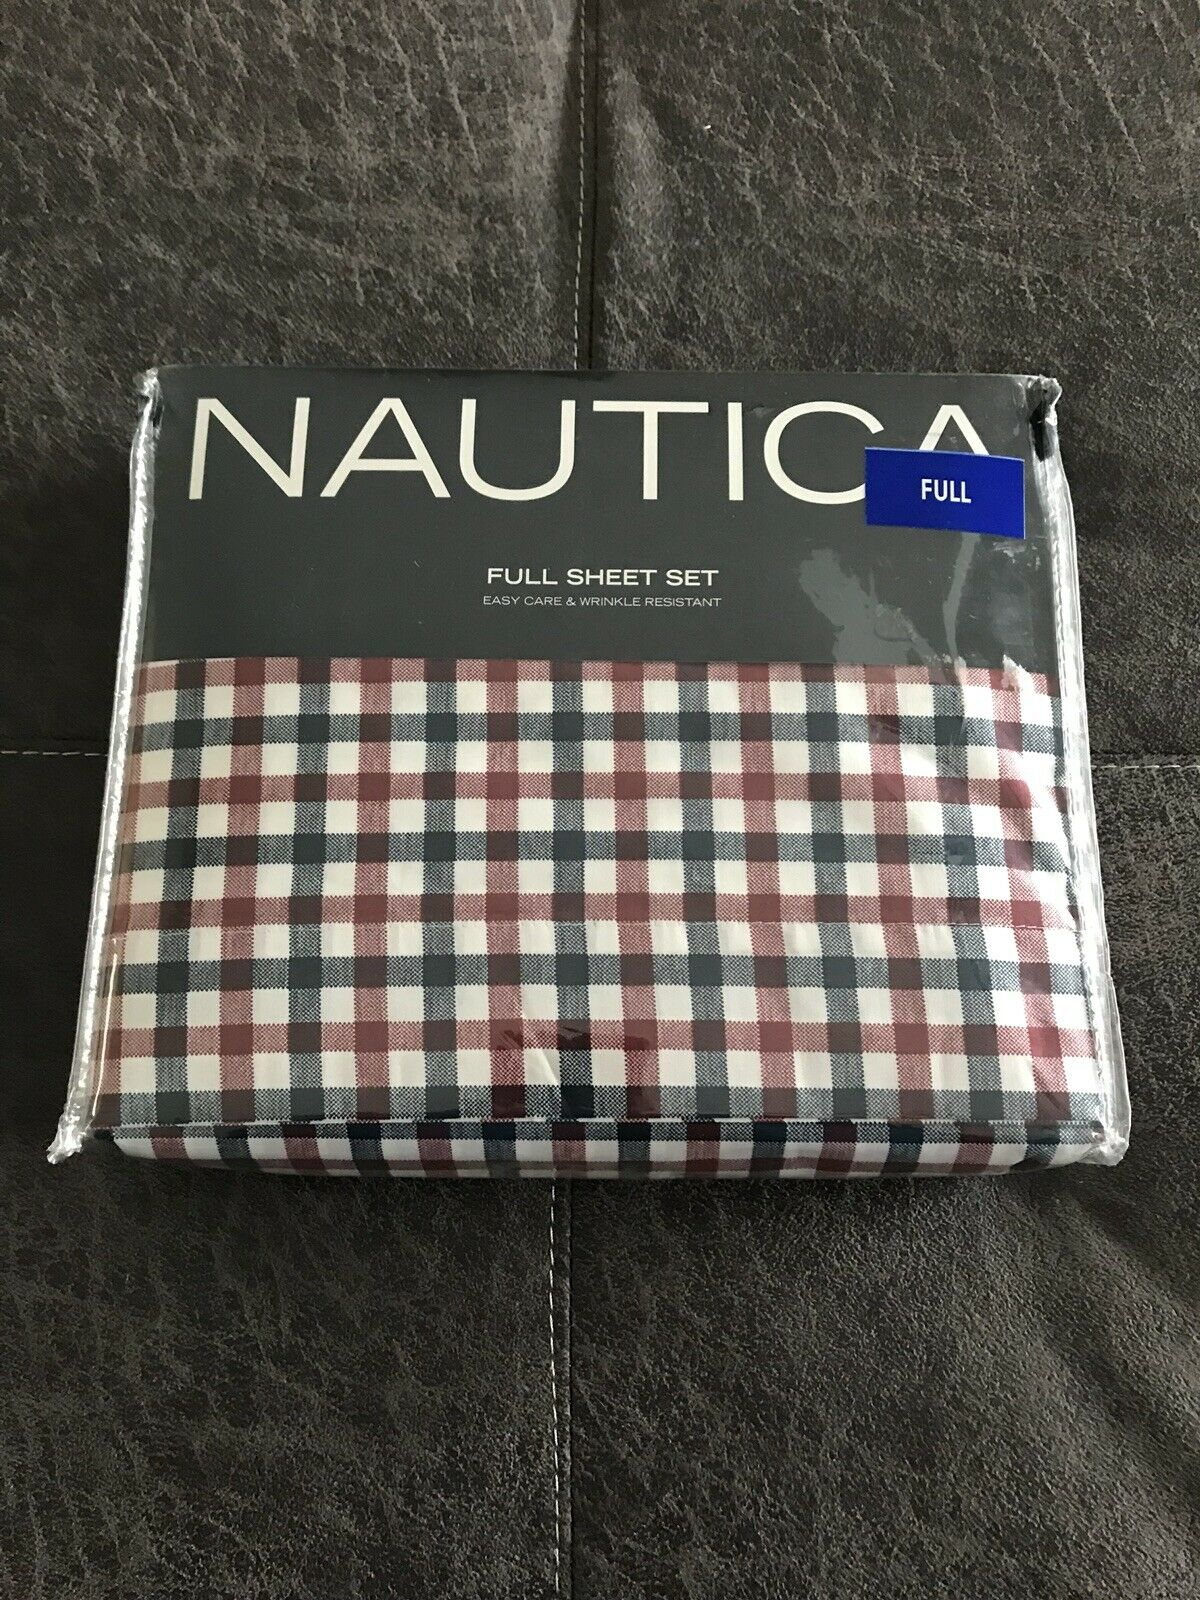 Nautica Full 4 Piece Sheet Set White Plaid Cotton NEW NWT CHEAPEST PRICE ON EBAY